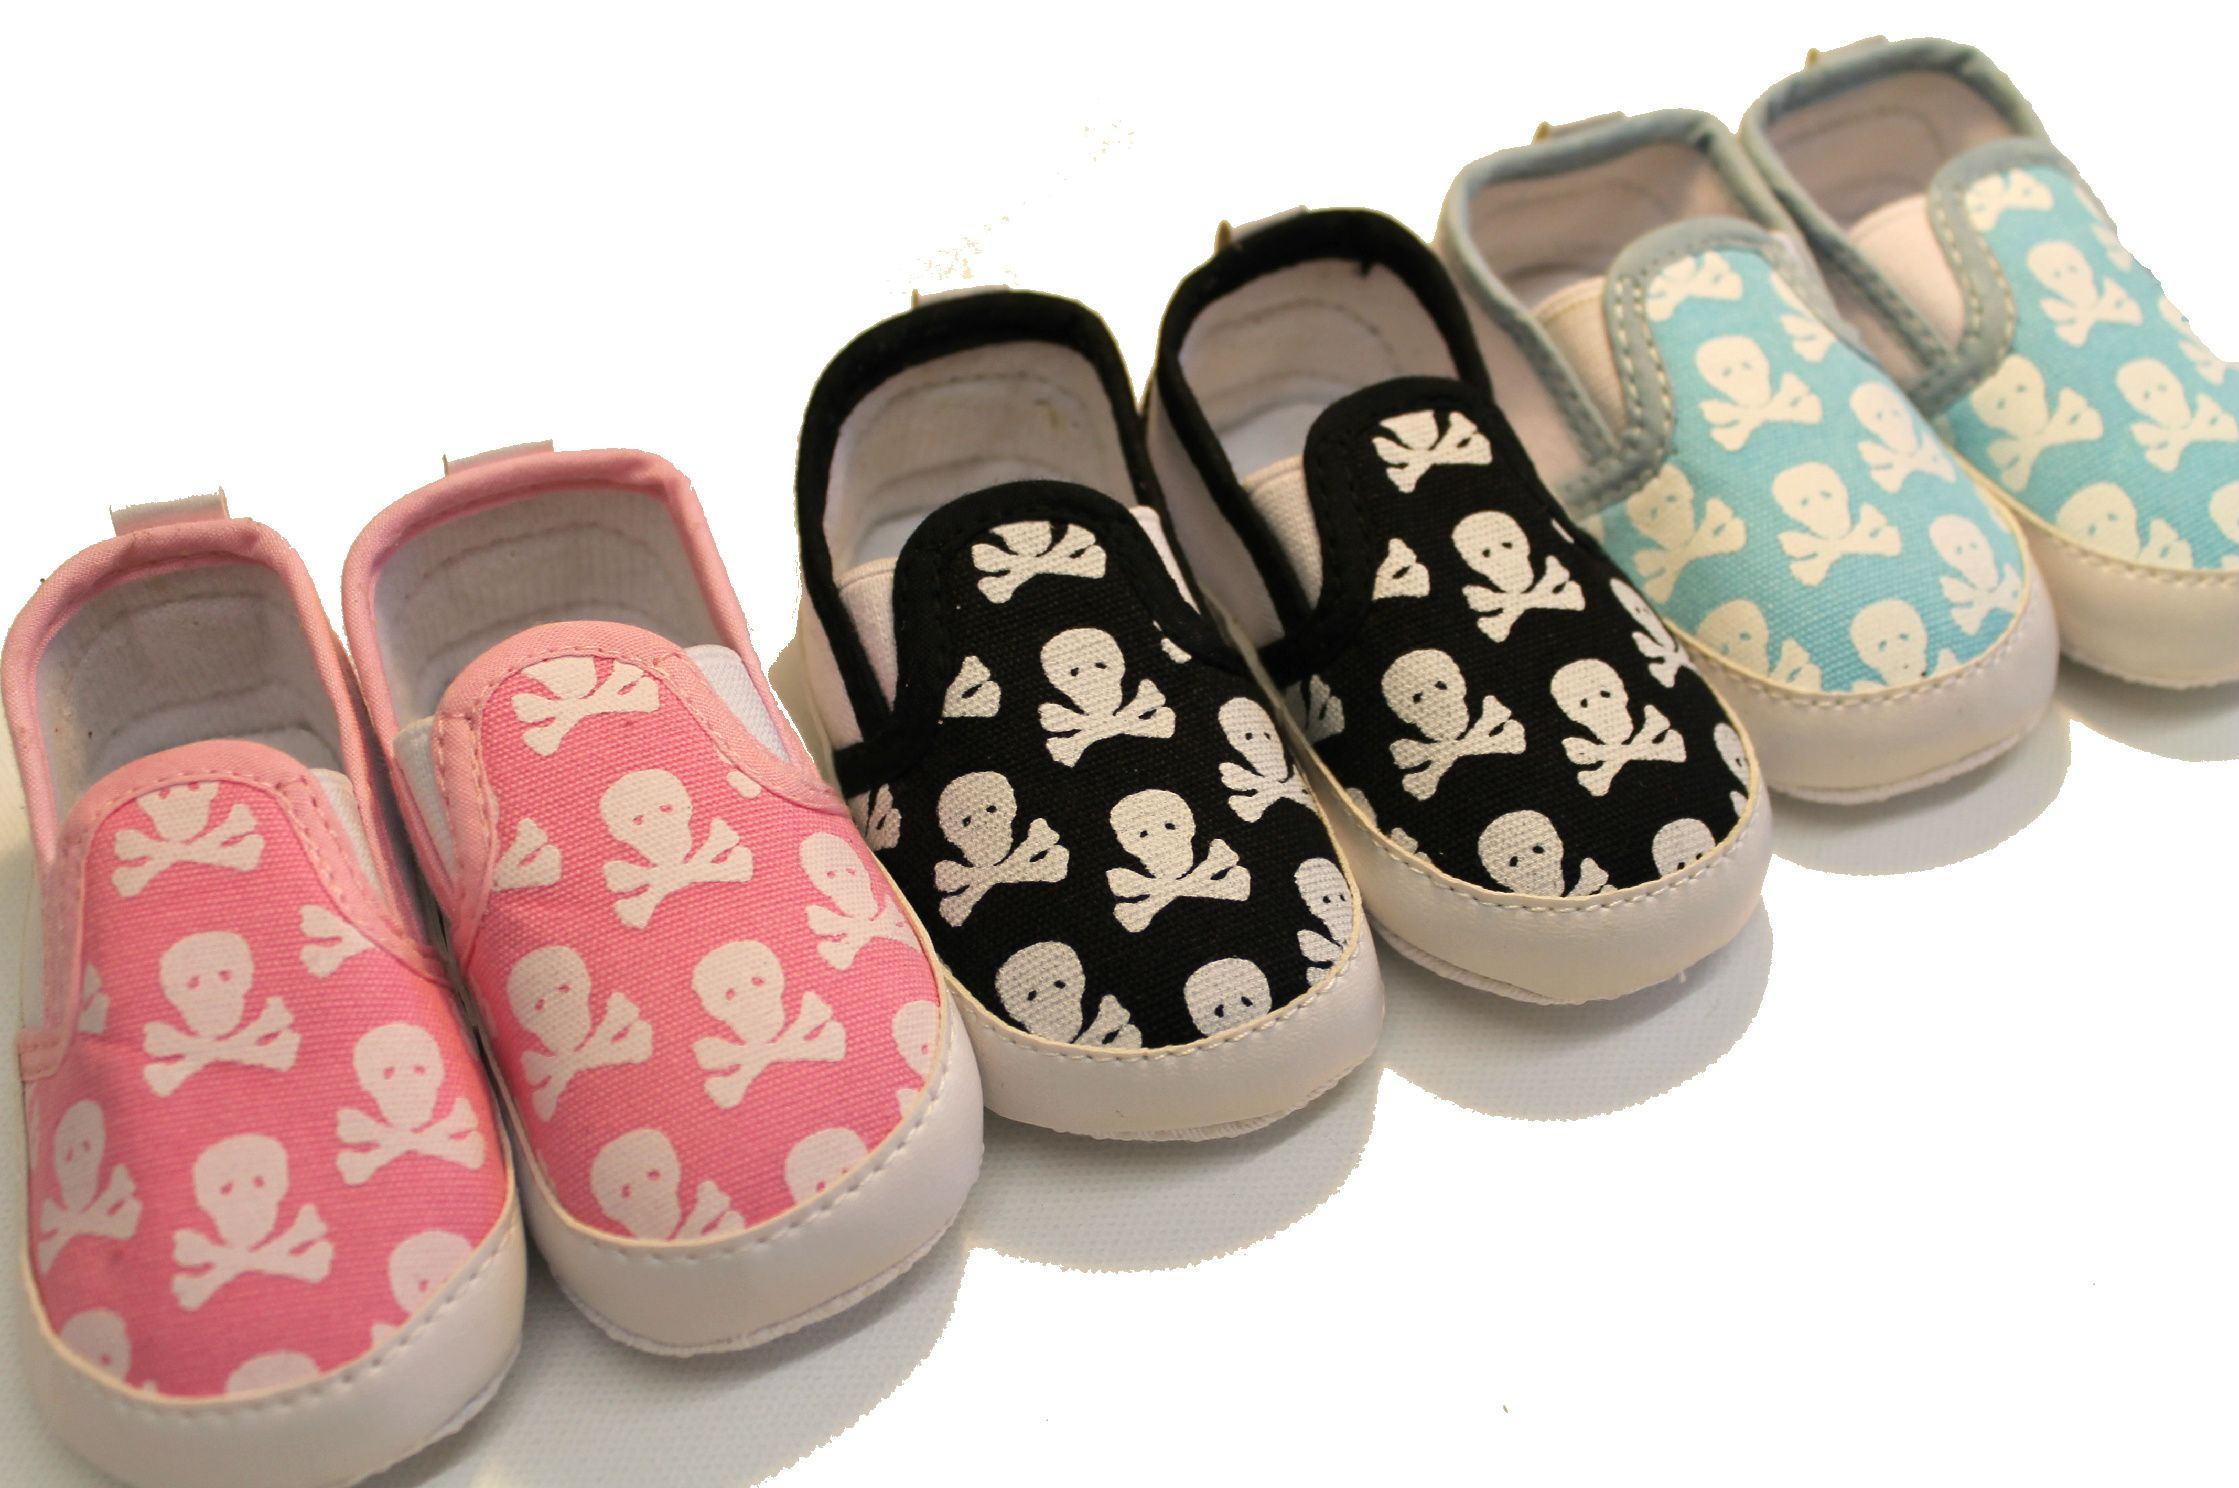 17 Best images about Kids shoes on Pinterest | Navy sandals ...